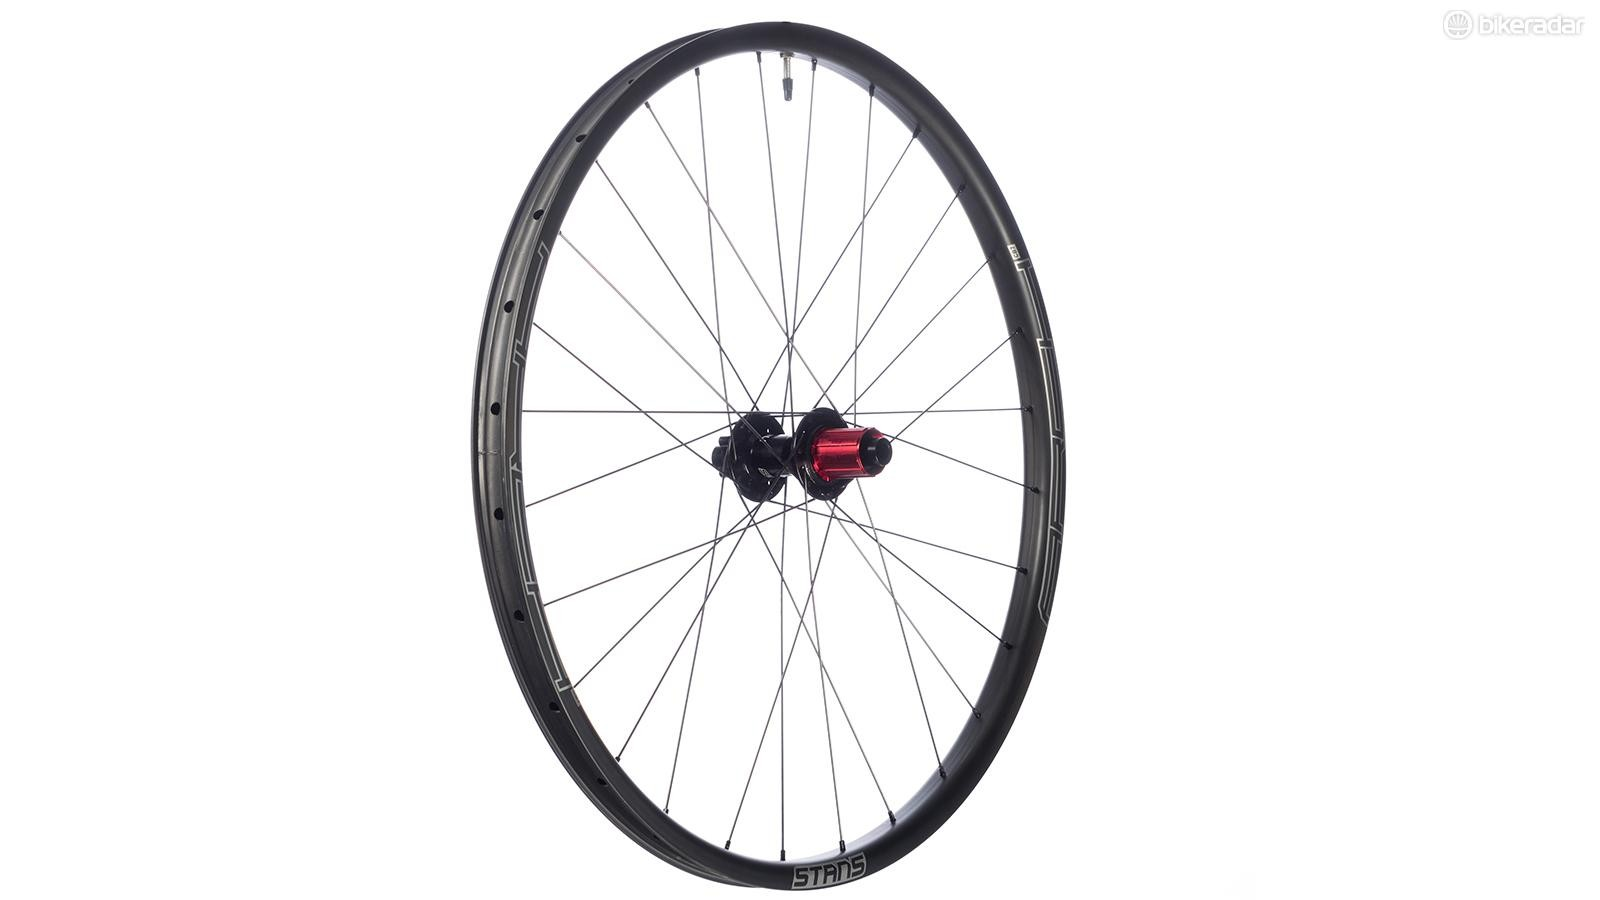 The Arch CB7 will be offered in 27.5 and 29in versions